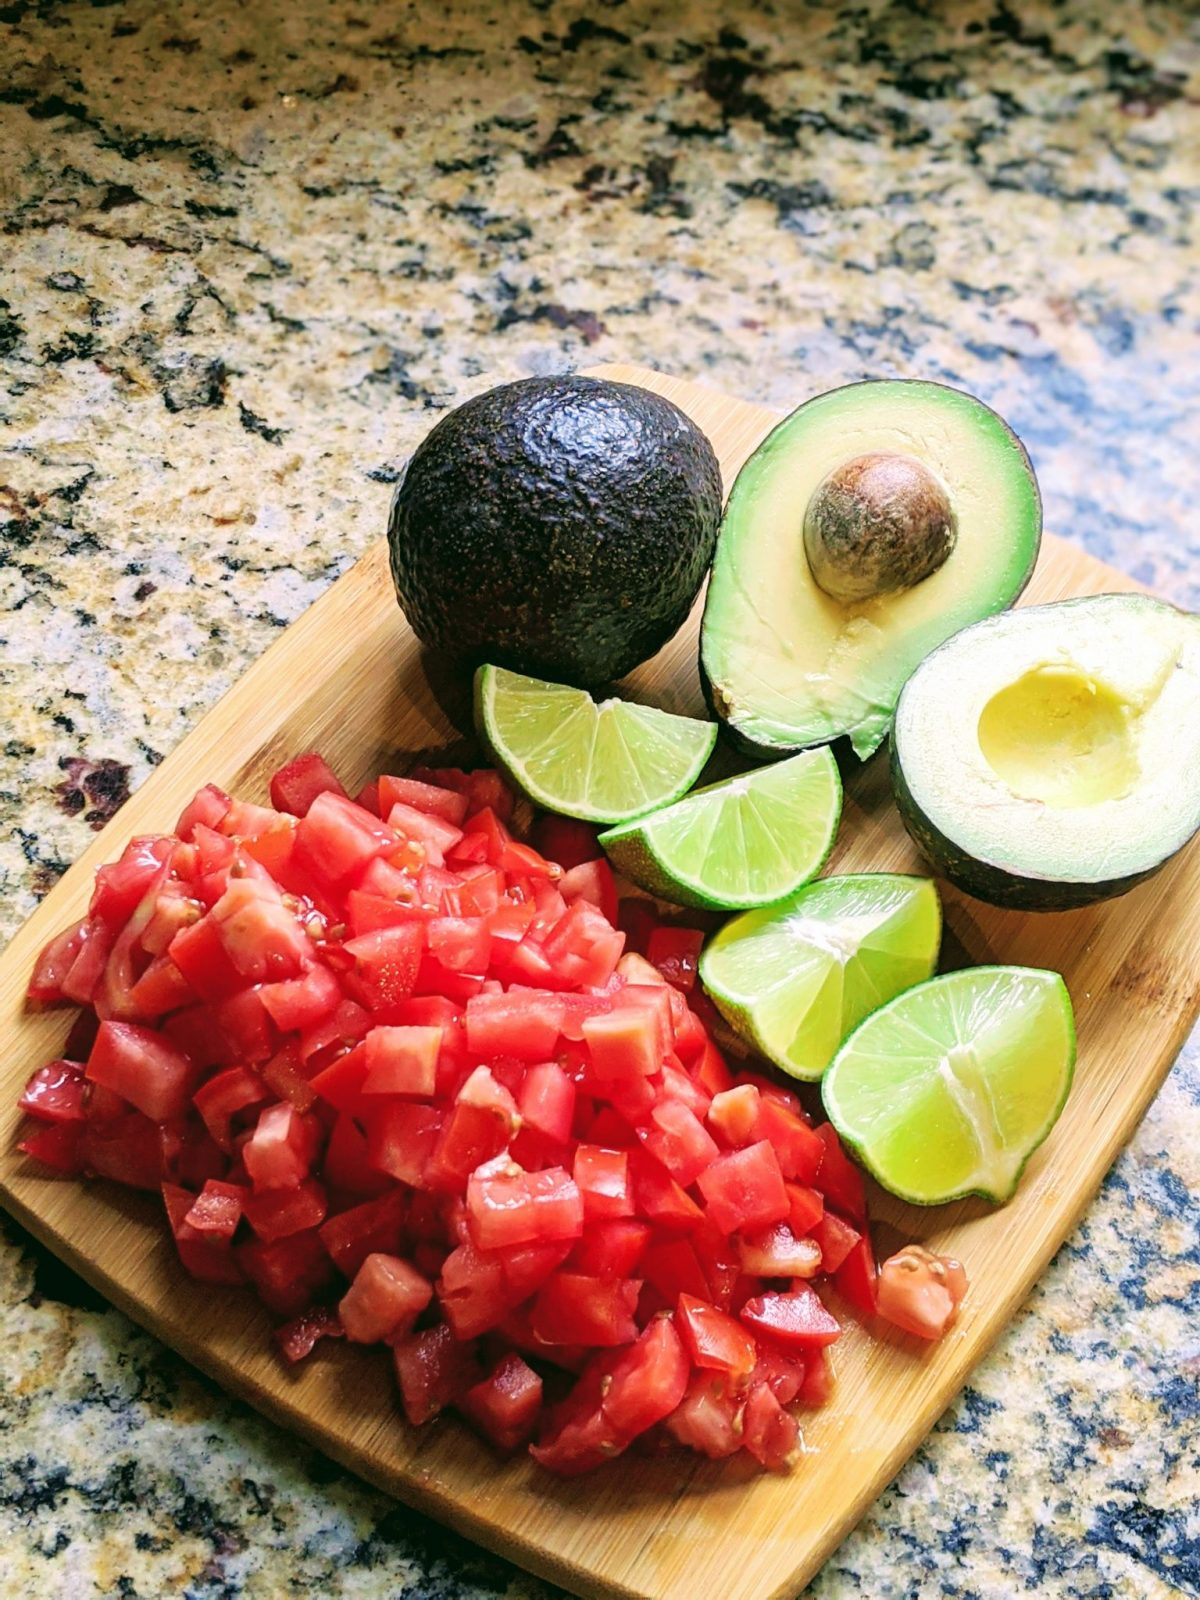 Cutting board with cut tomatoes, sliced limes, and sliced avocados